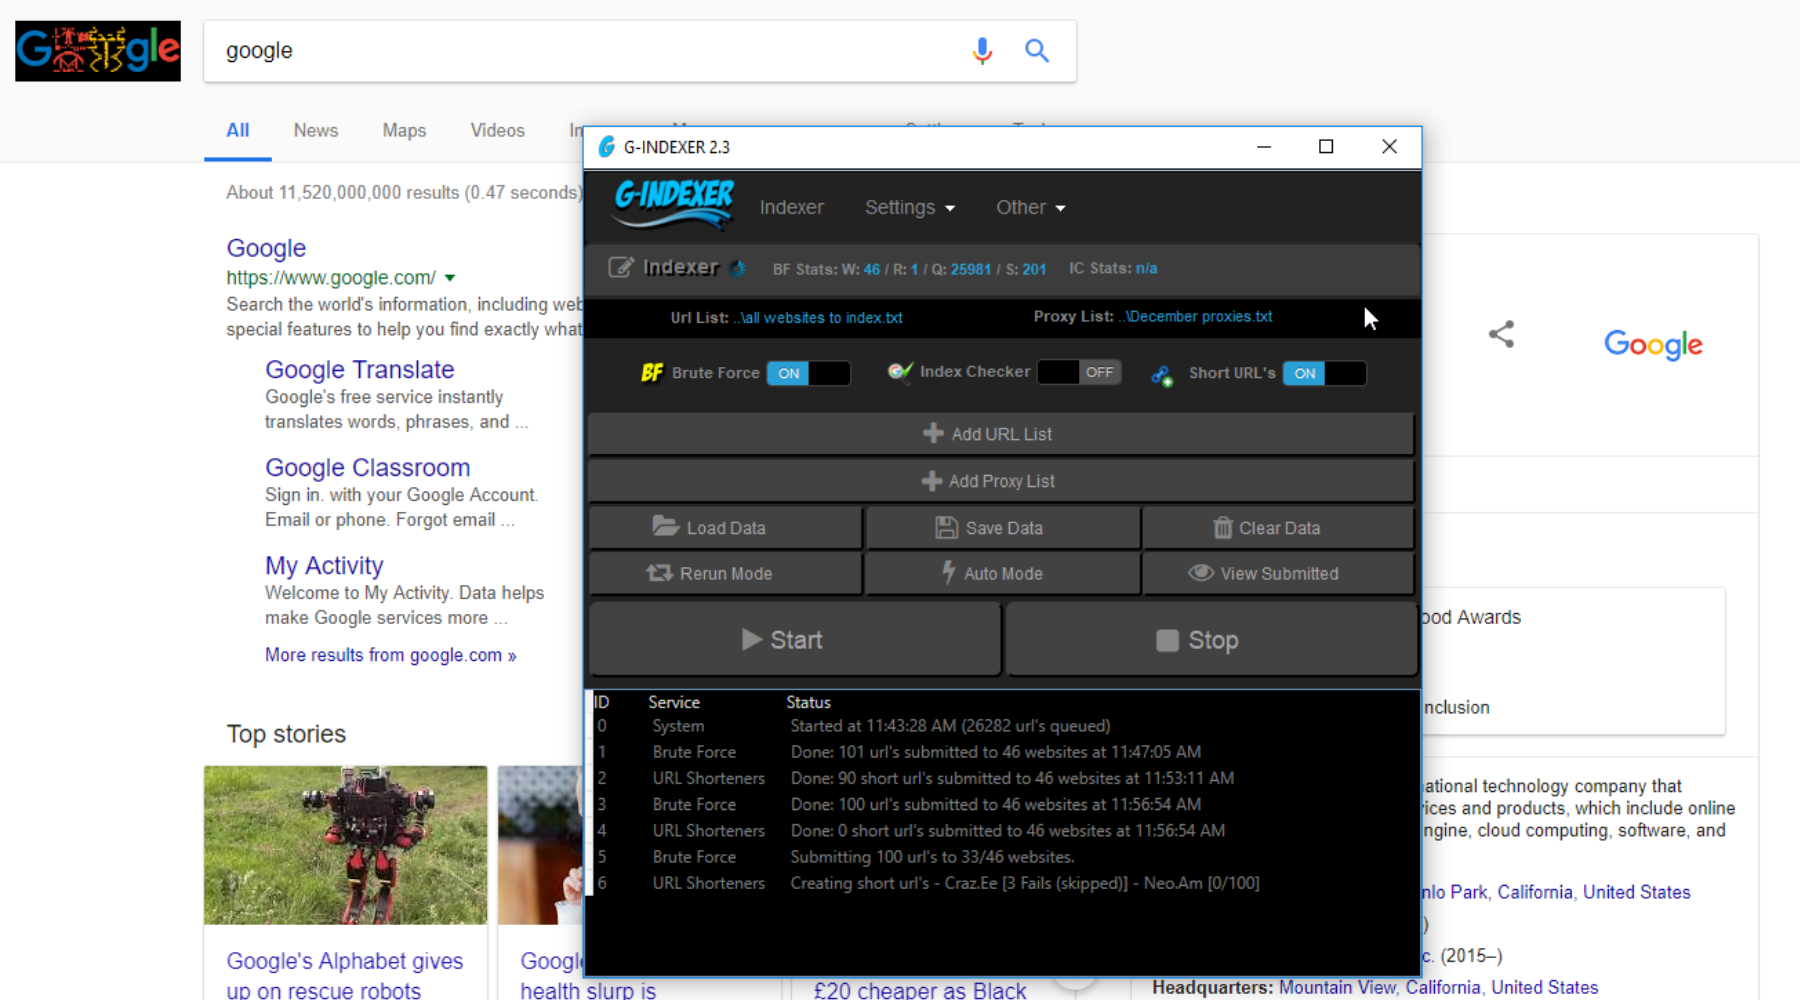 Full Review of G-Indexer: Google Instant Link Indexing Software